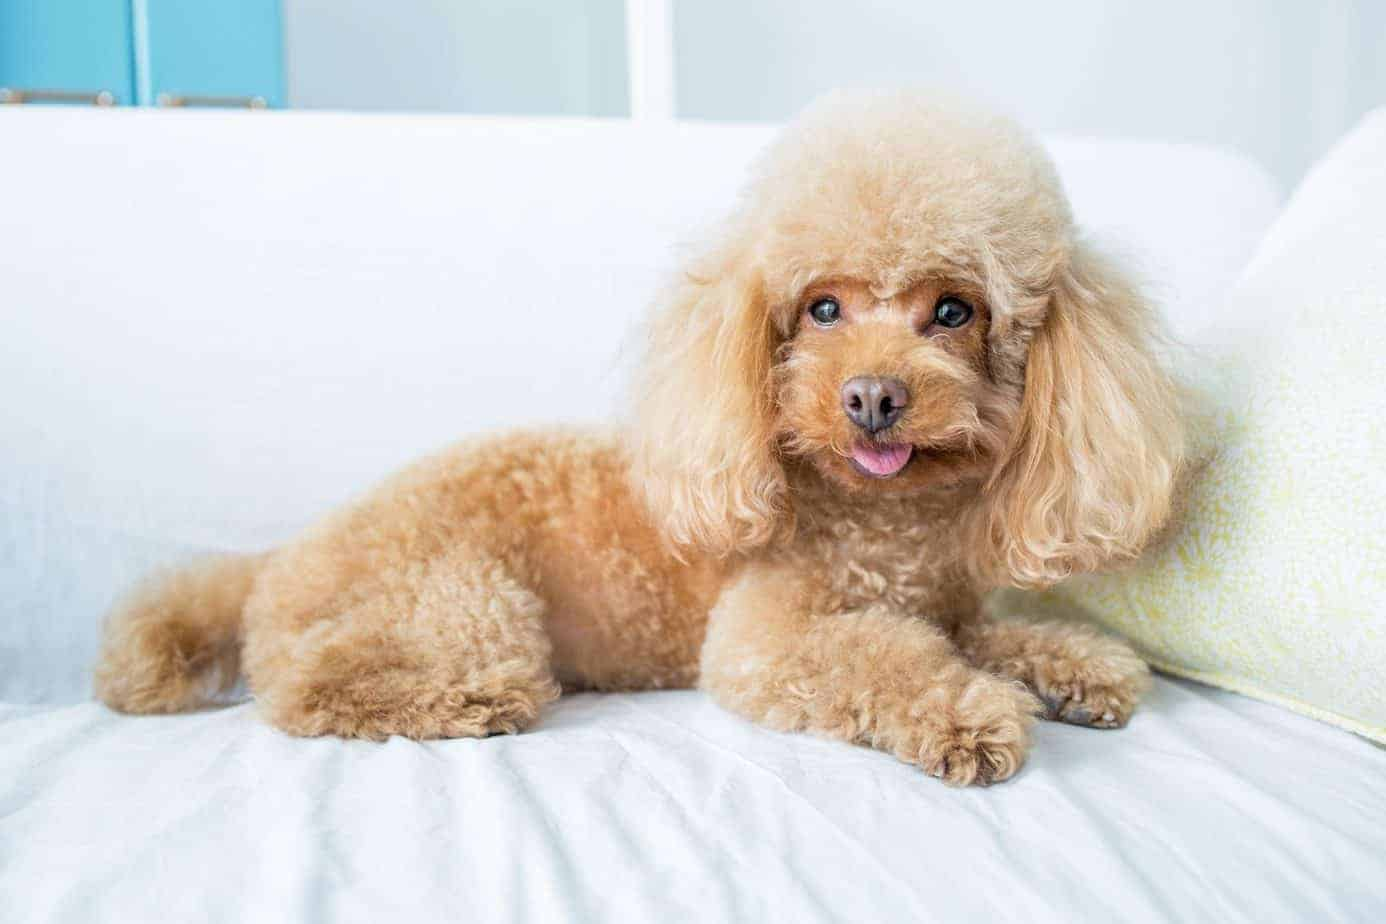 Poodle rests on a bed. The poodle is easy to train, loads of fun, and quite energetic.They like to be with people most of the time and definitely hate being in a kennel.